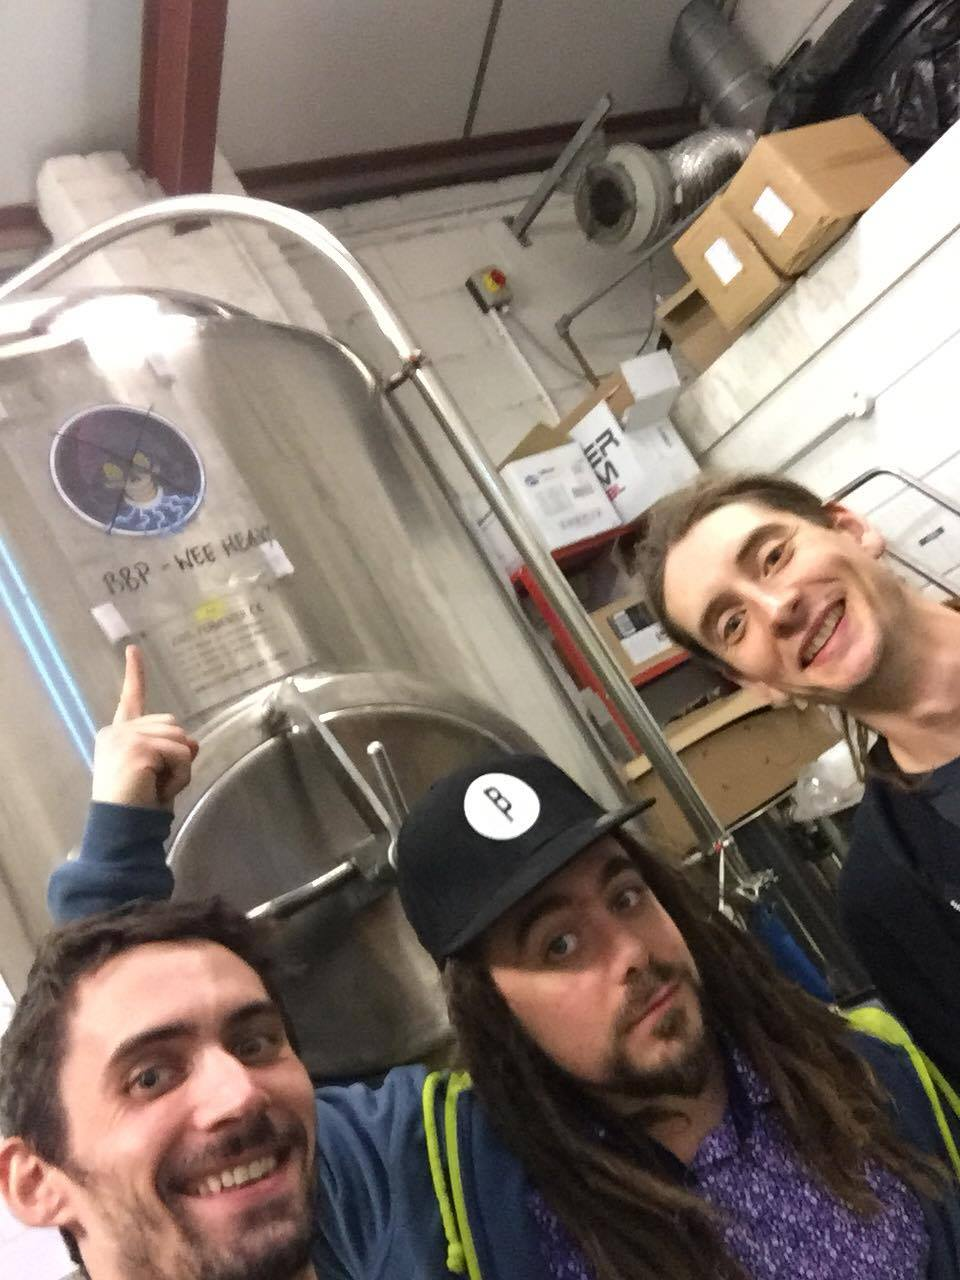 Brewers (left-right): Ryan, Yves and Kit